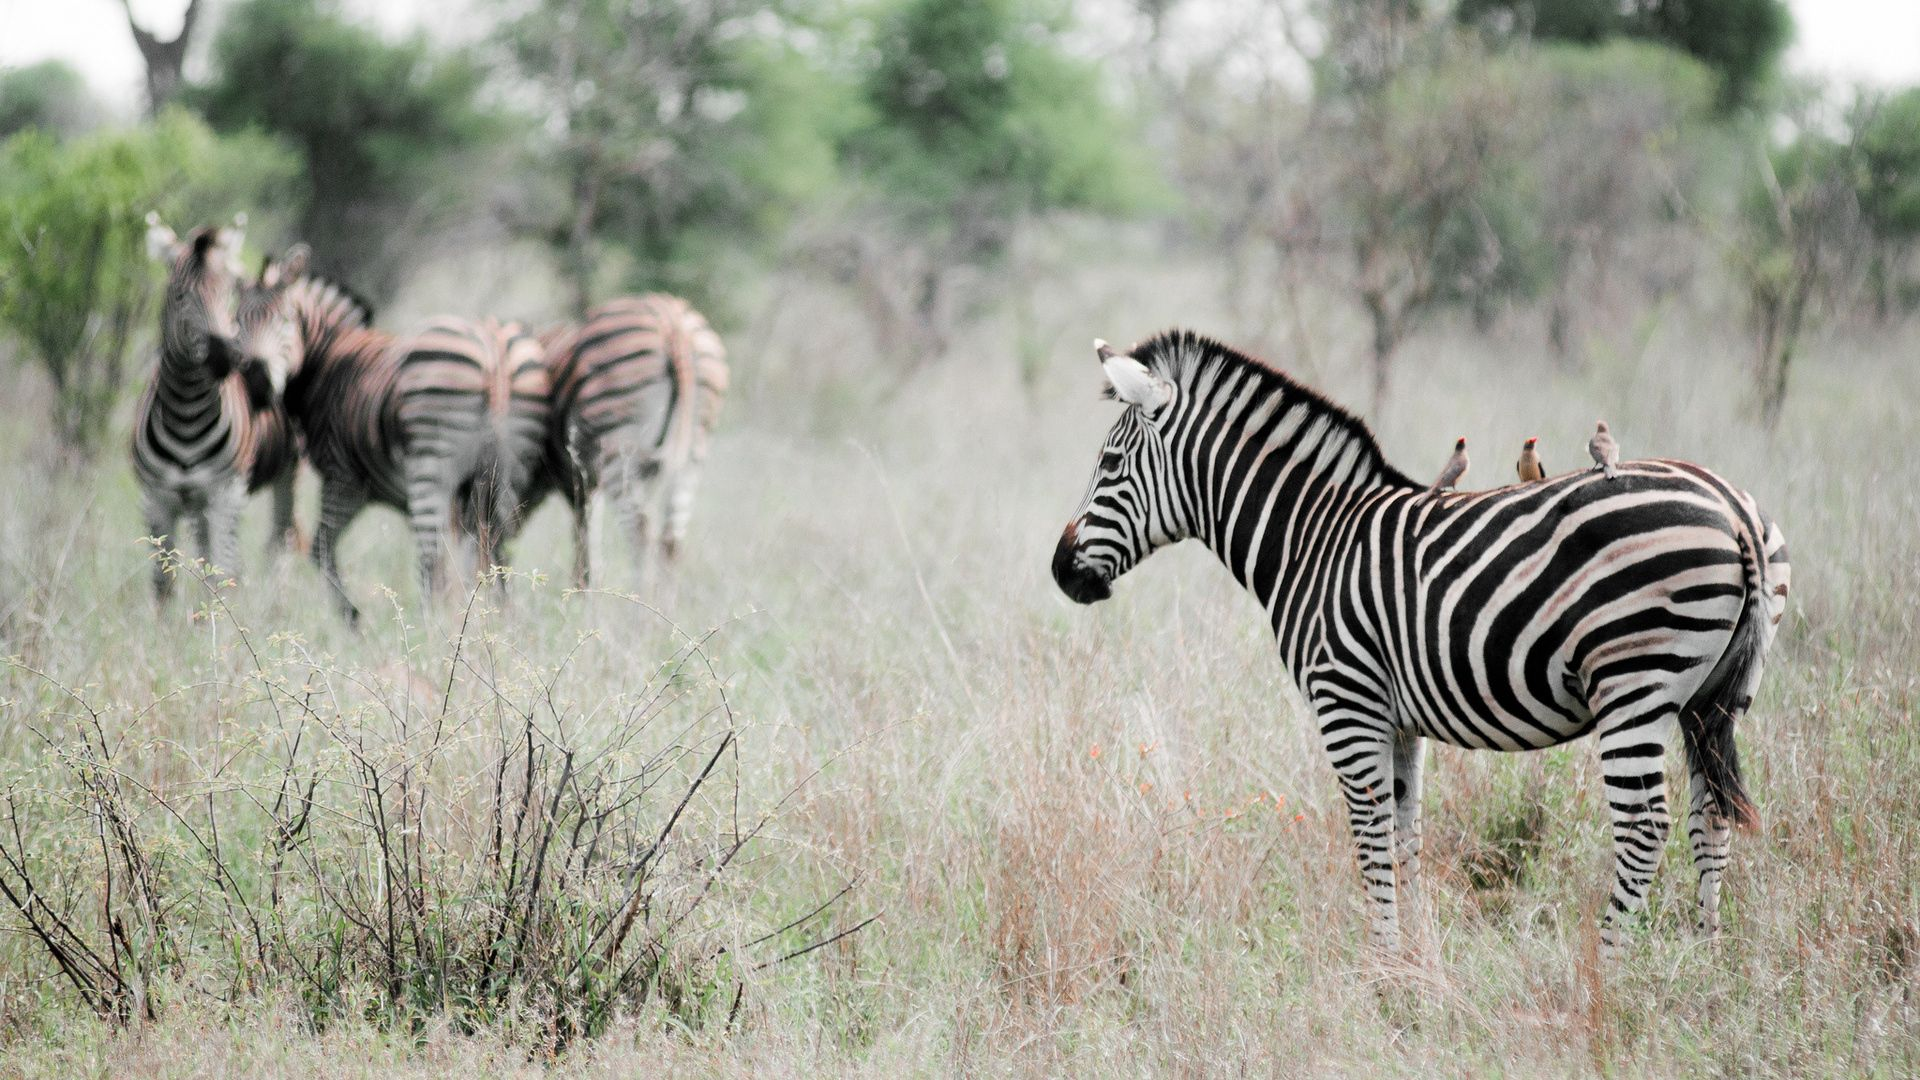 117586 download wallpaper Animals, Zebra, Grass, Stroll, Field, To Stand, Stand screensavers and pictures for free